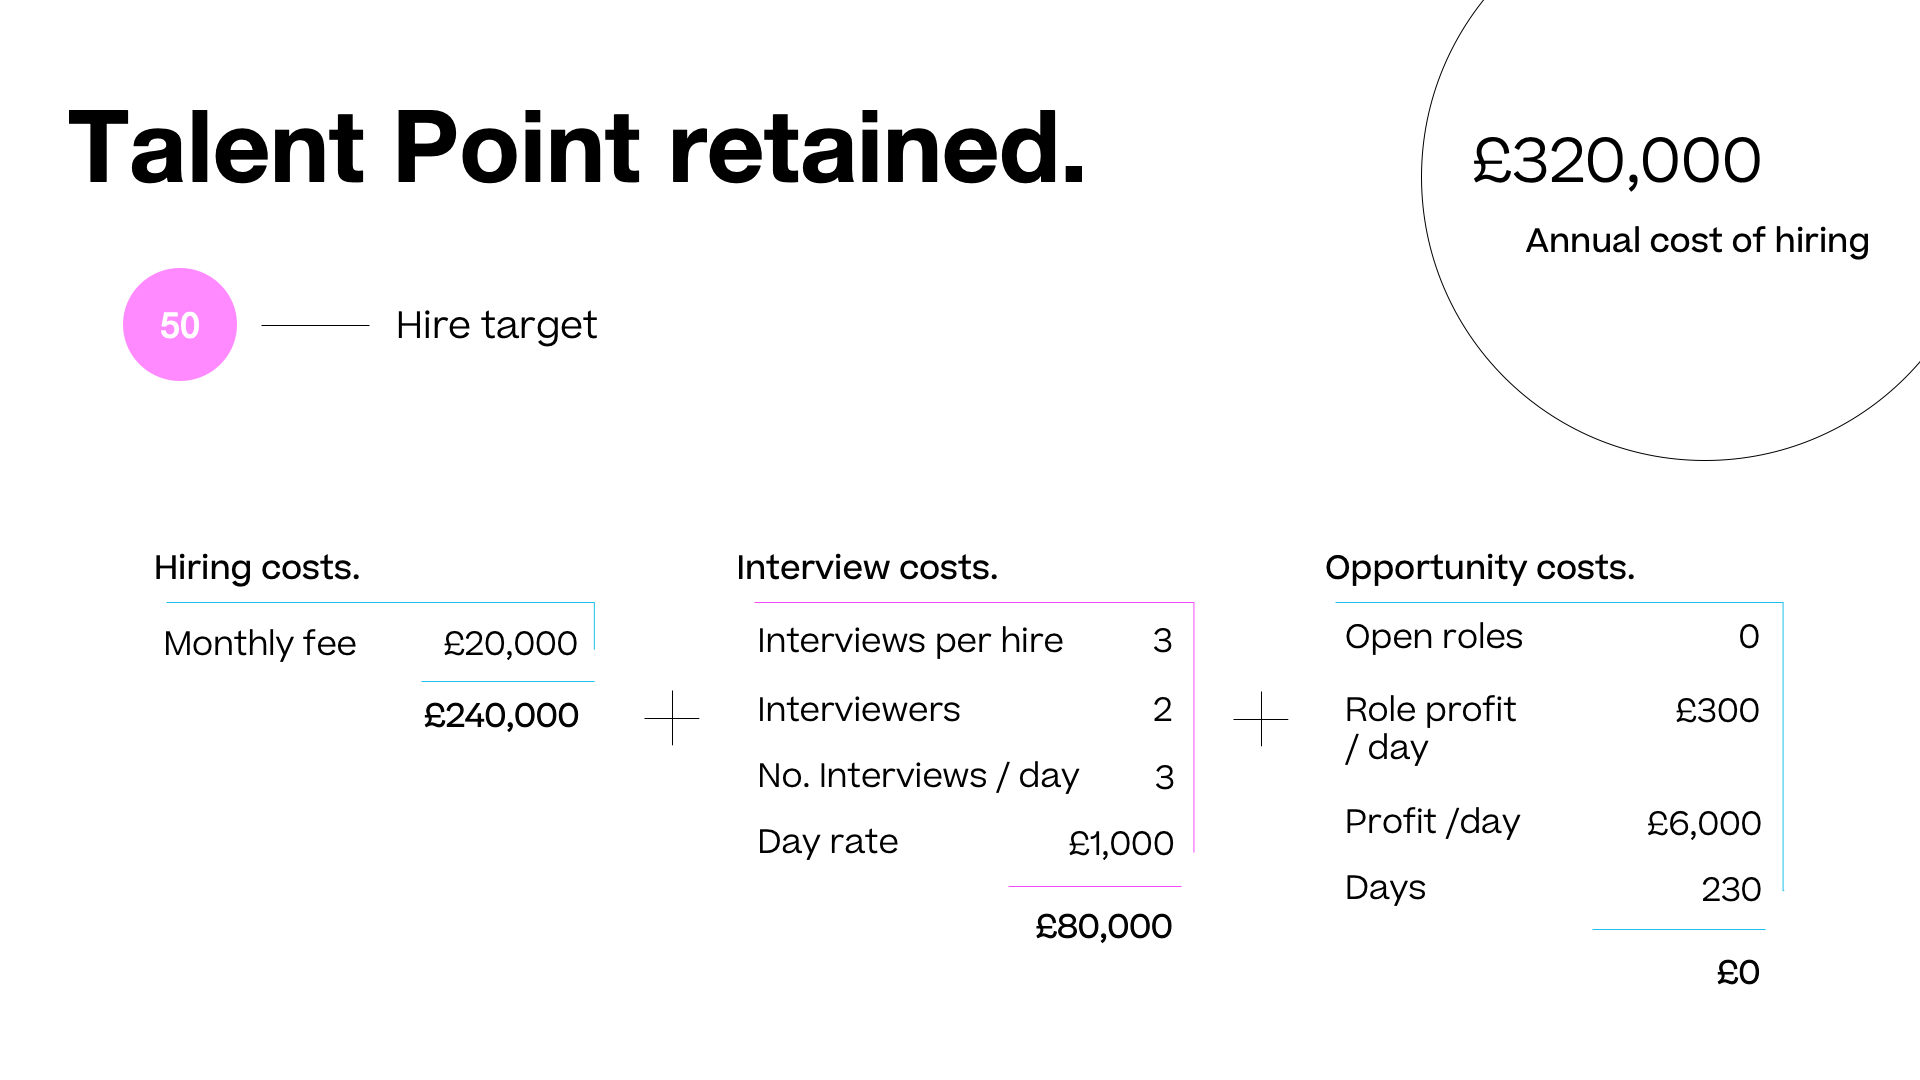 talent point retained service